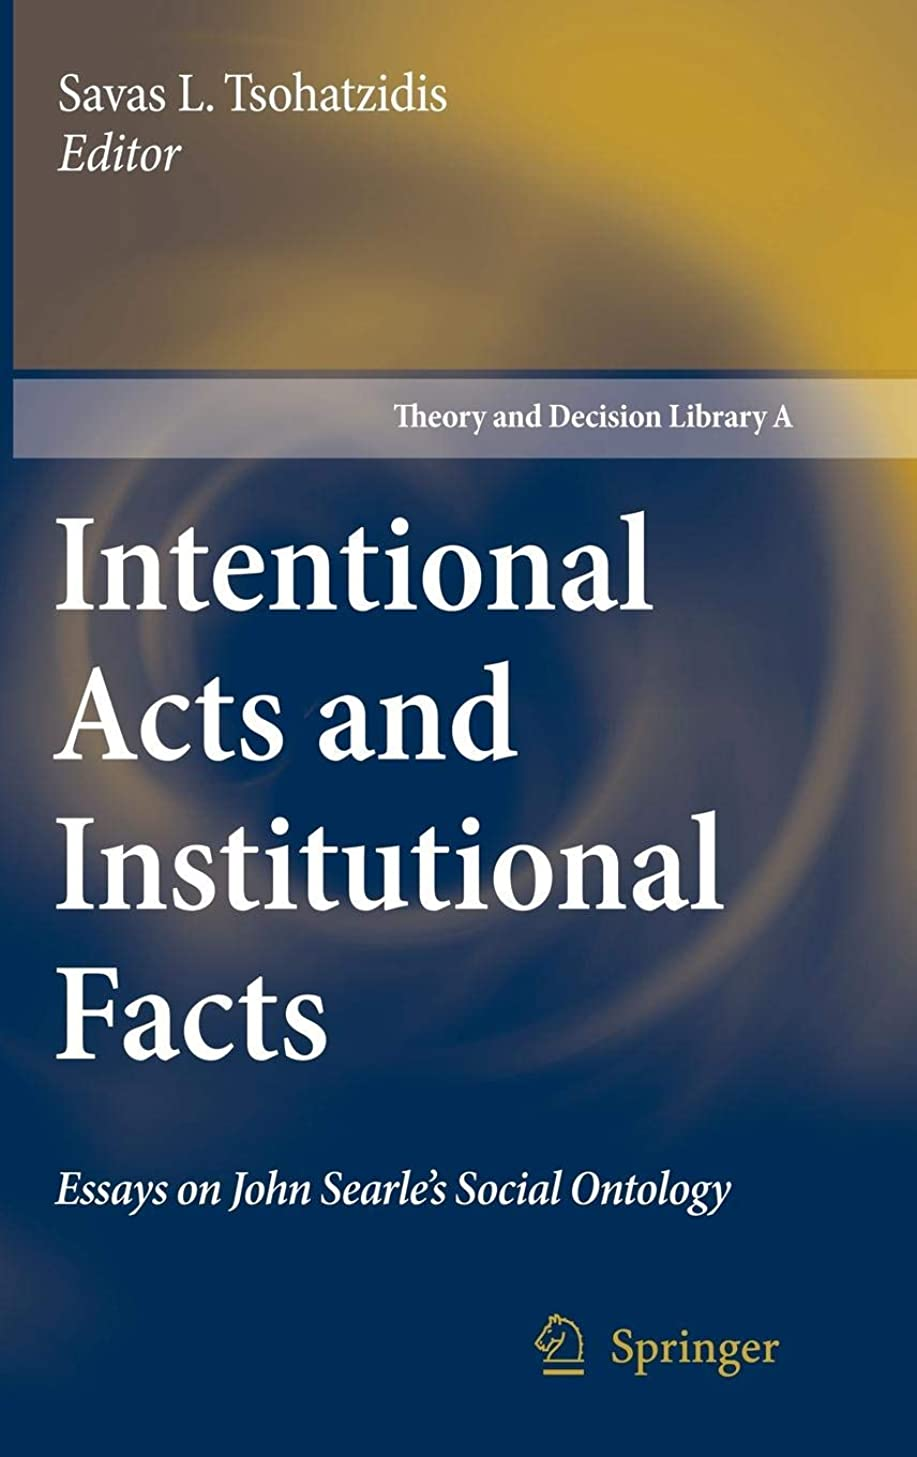 Intentional Acts and Institutional Facts: Essays on John Searle's Social Ontology (Theory and Decision Library / Series A: Philosophy and Methodology of the Social Sciences, Vol. 41)